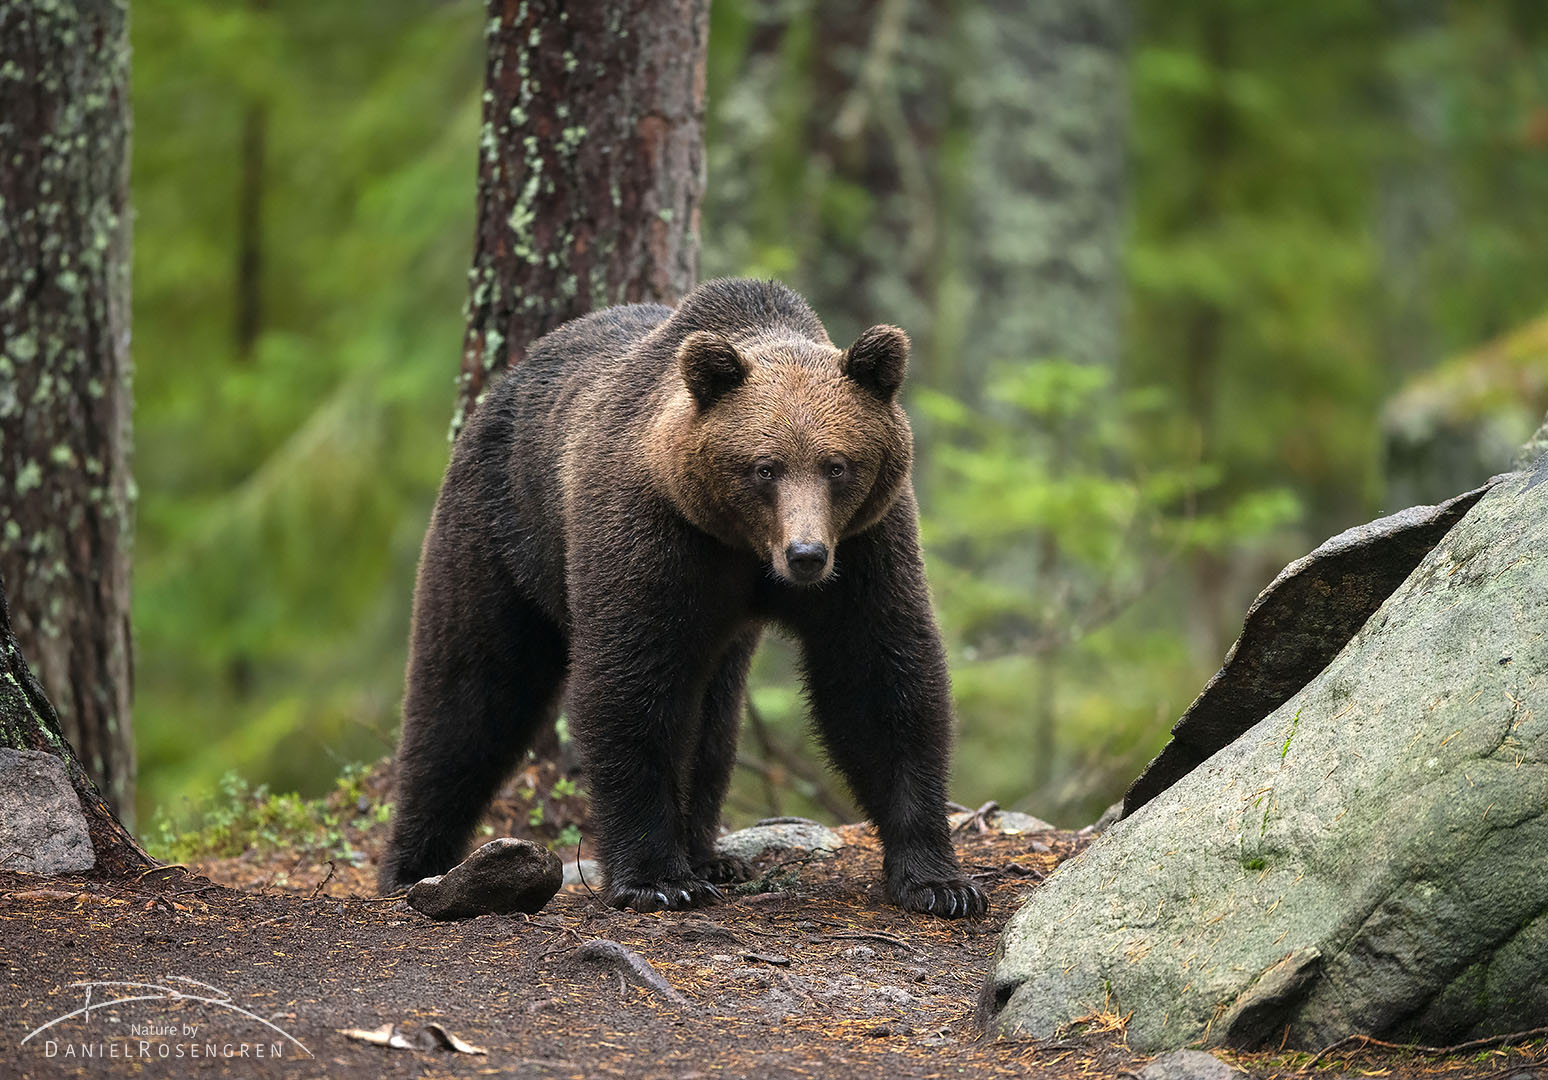 A brown bear seen in the forests of Sweden.